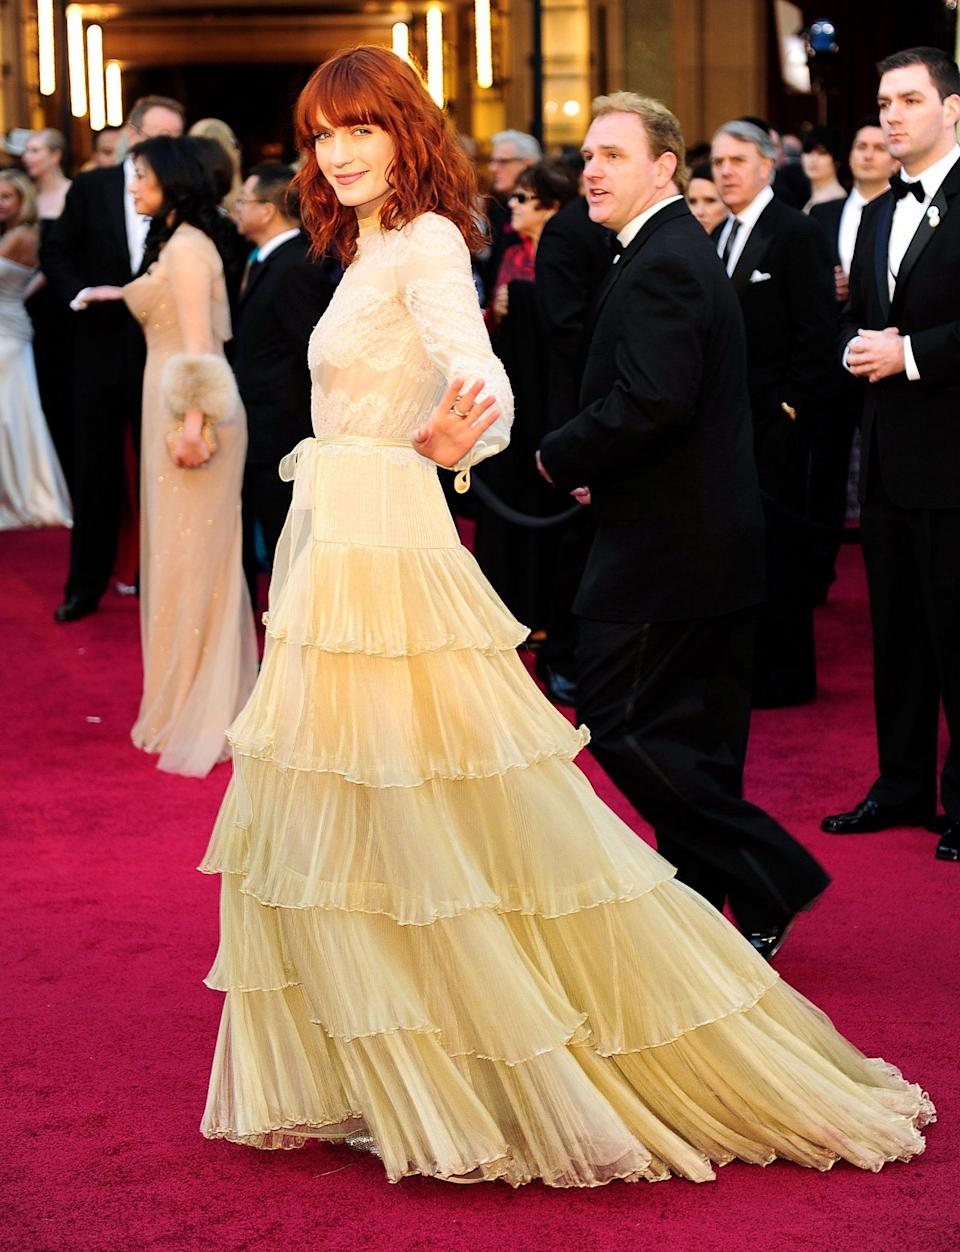 """<p>Florence Welch looked ethereal as she arrived for the Academy Awards in 2011. The Florence + The Machine singer performed """"If I Rise"""" from <em>127 Hours</em>, which was nominated for Best Original Song. </p>"""